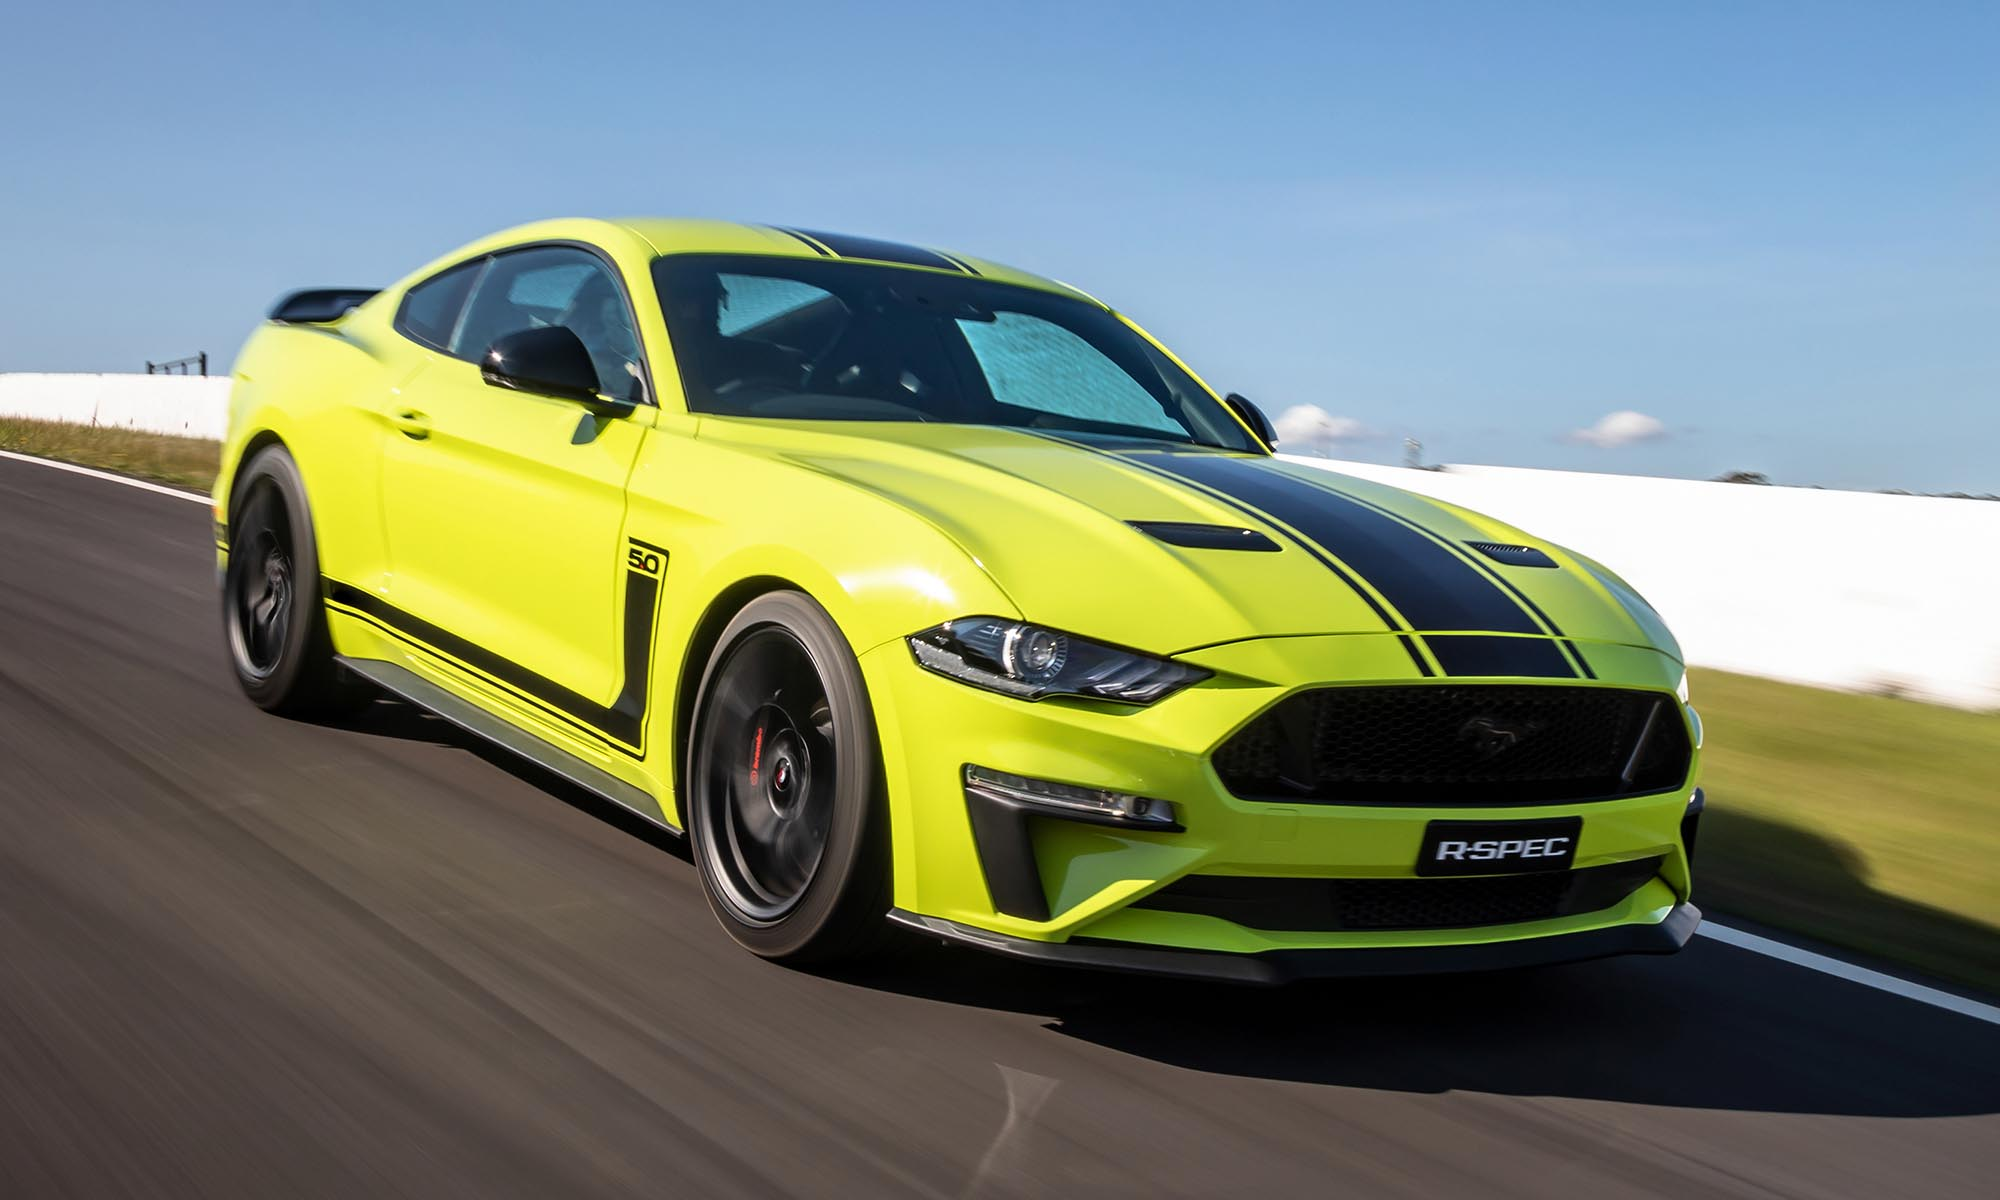 Ford Mustang R-Spec, six-speed manual gearbox, Herrod Performance, sport, race, normal, Blue Oval's Australian division, Ford, Ford Mustang, Mustang, car, cars, supercars, instacars, carpic, automobile, lovecars, horsepower, exoticcars, supercharged, boosted, carlover, hypercar, dreamcars, luxury, modified, tuning, turbo, fastcar, racecar, motorsport, engine, carshow, carspotting, automotive, autos, carswithoutlimits, carlifestyle, tuning, tuningcar, carsfromgermany, drive, vehicles, speed, v8, youtube, video